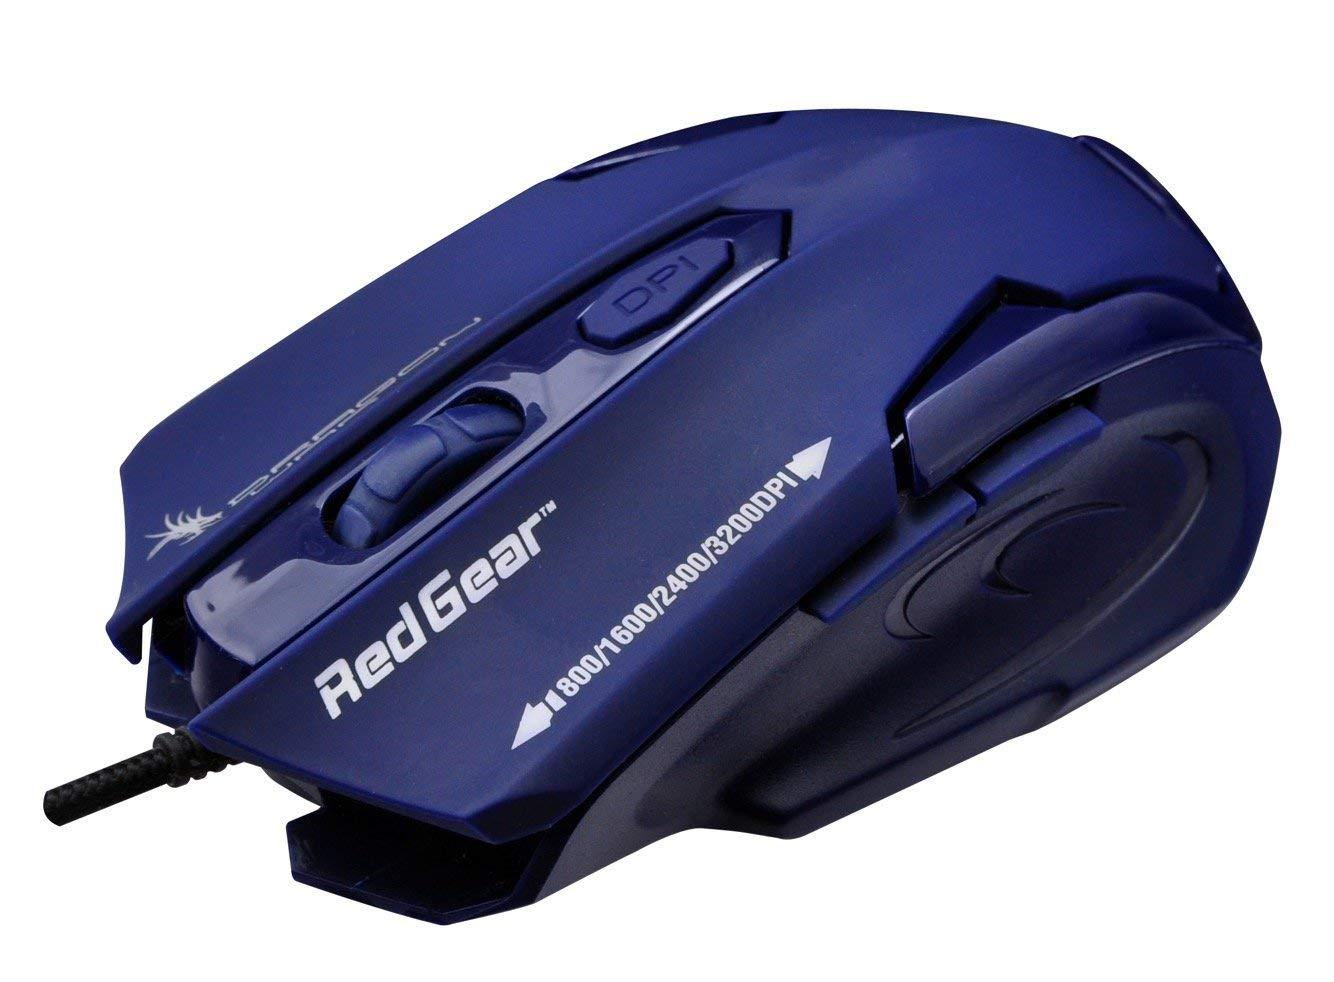 5 Must have Budget Gaming Accessories under Rs.2500